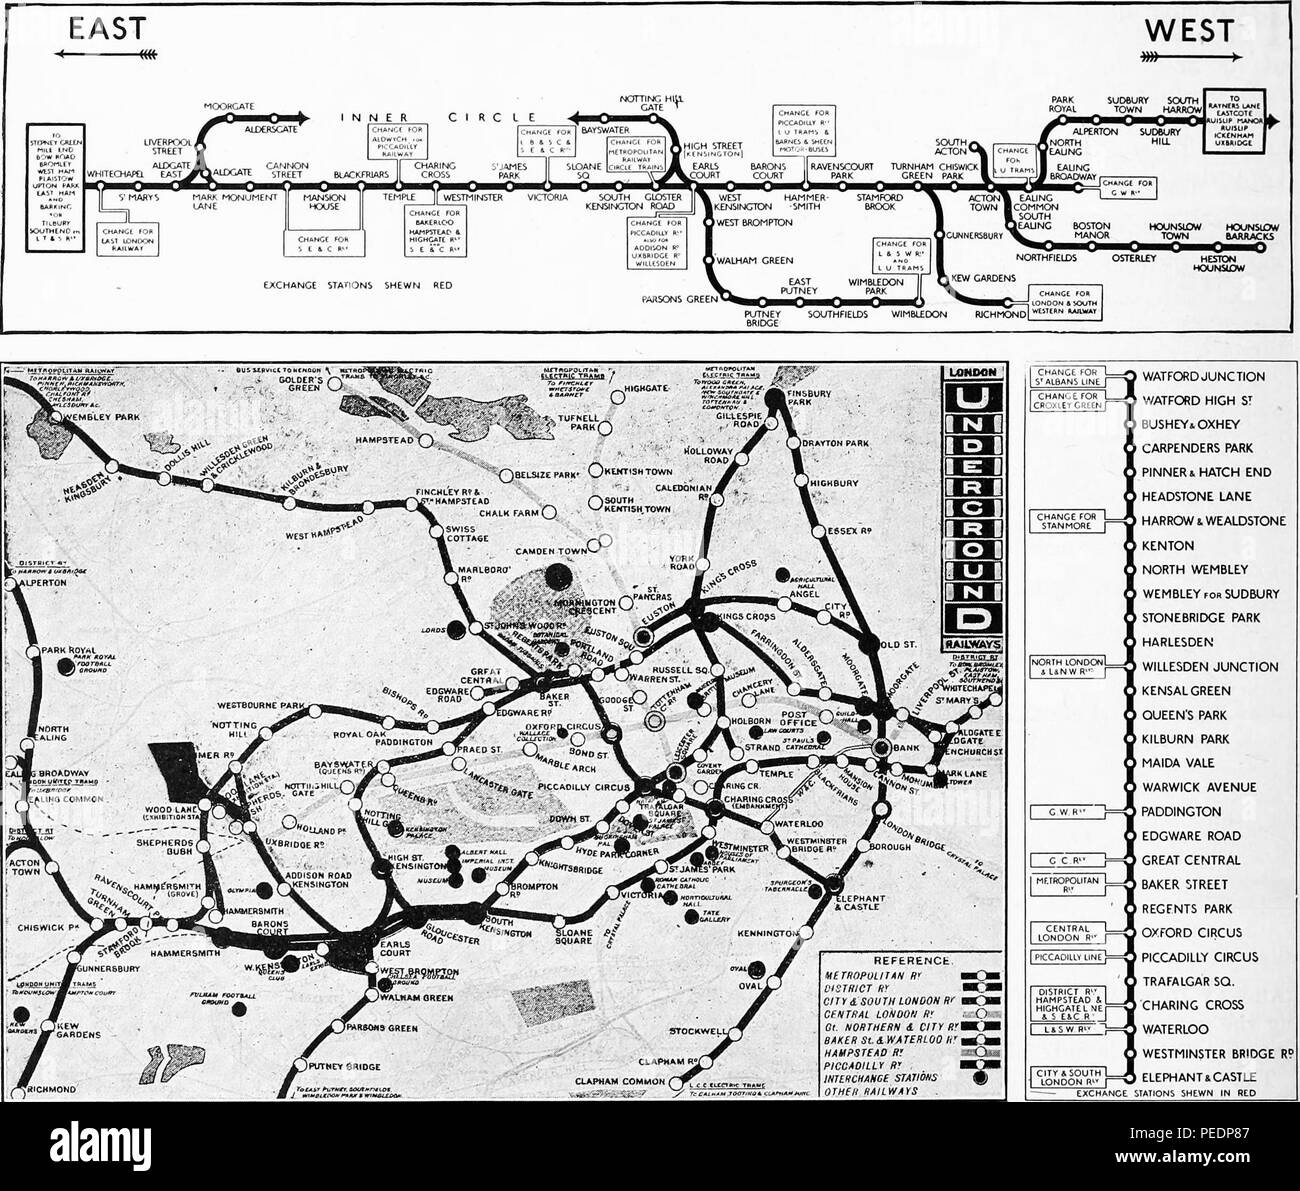 Map Of London Underground System.Black And White Maps Of The London Underground With The Entire